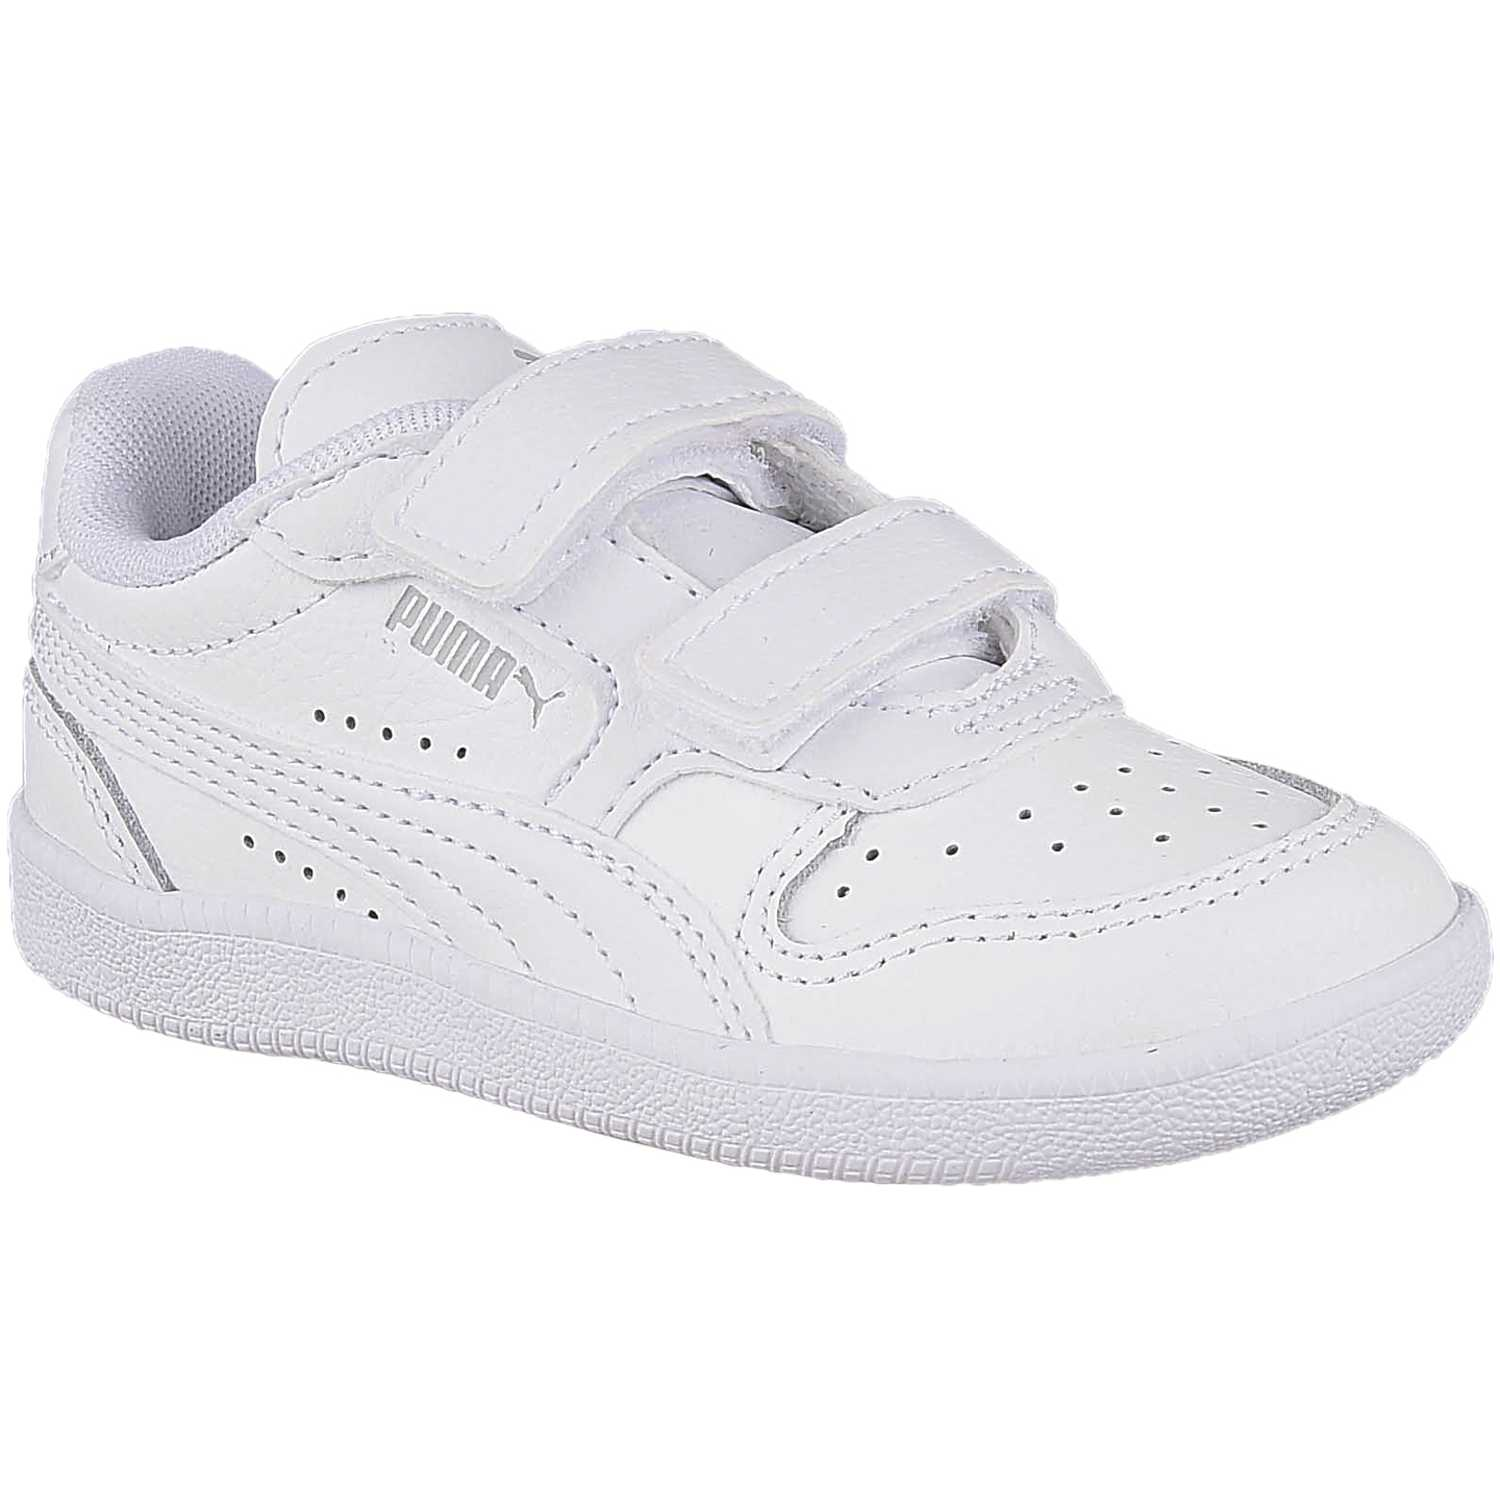 85b51387 Zapatillas casual de Niño Puma Blanco icra trainer v kids ...